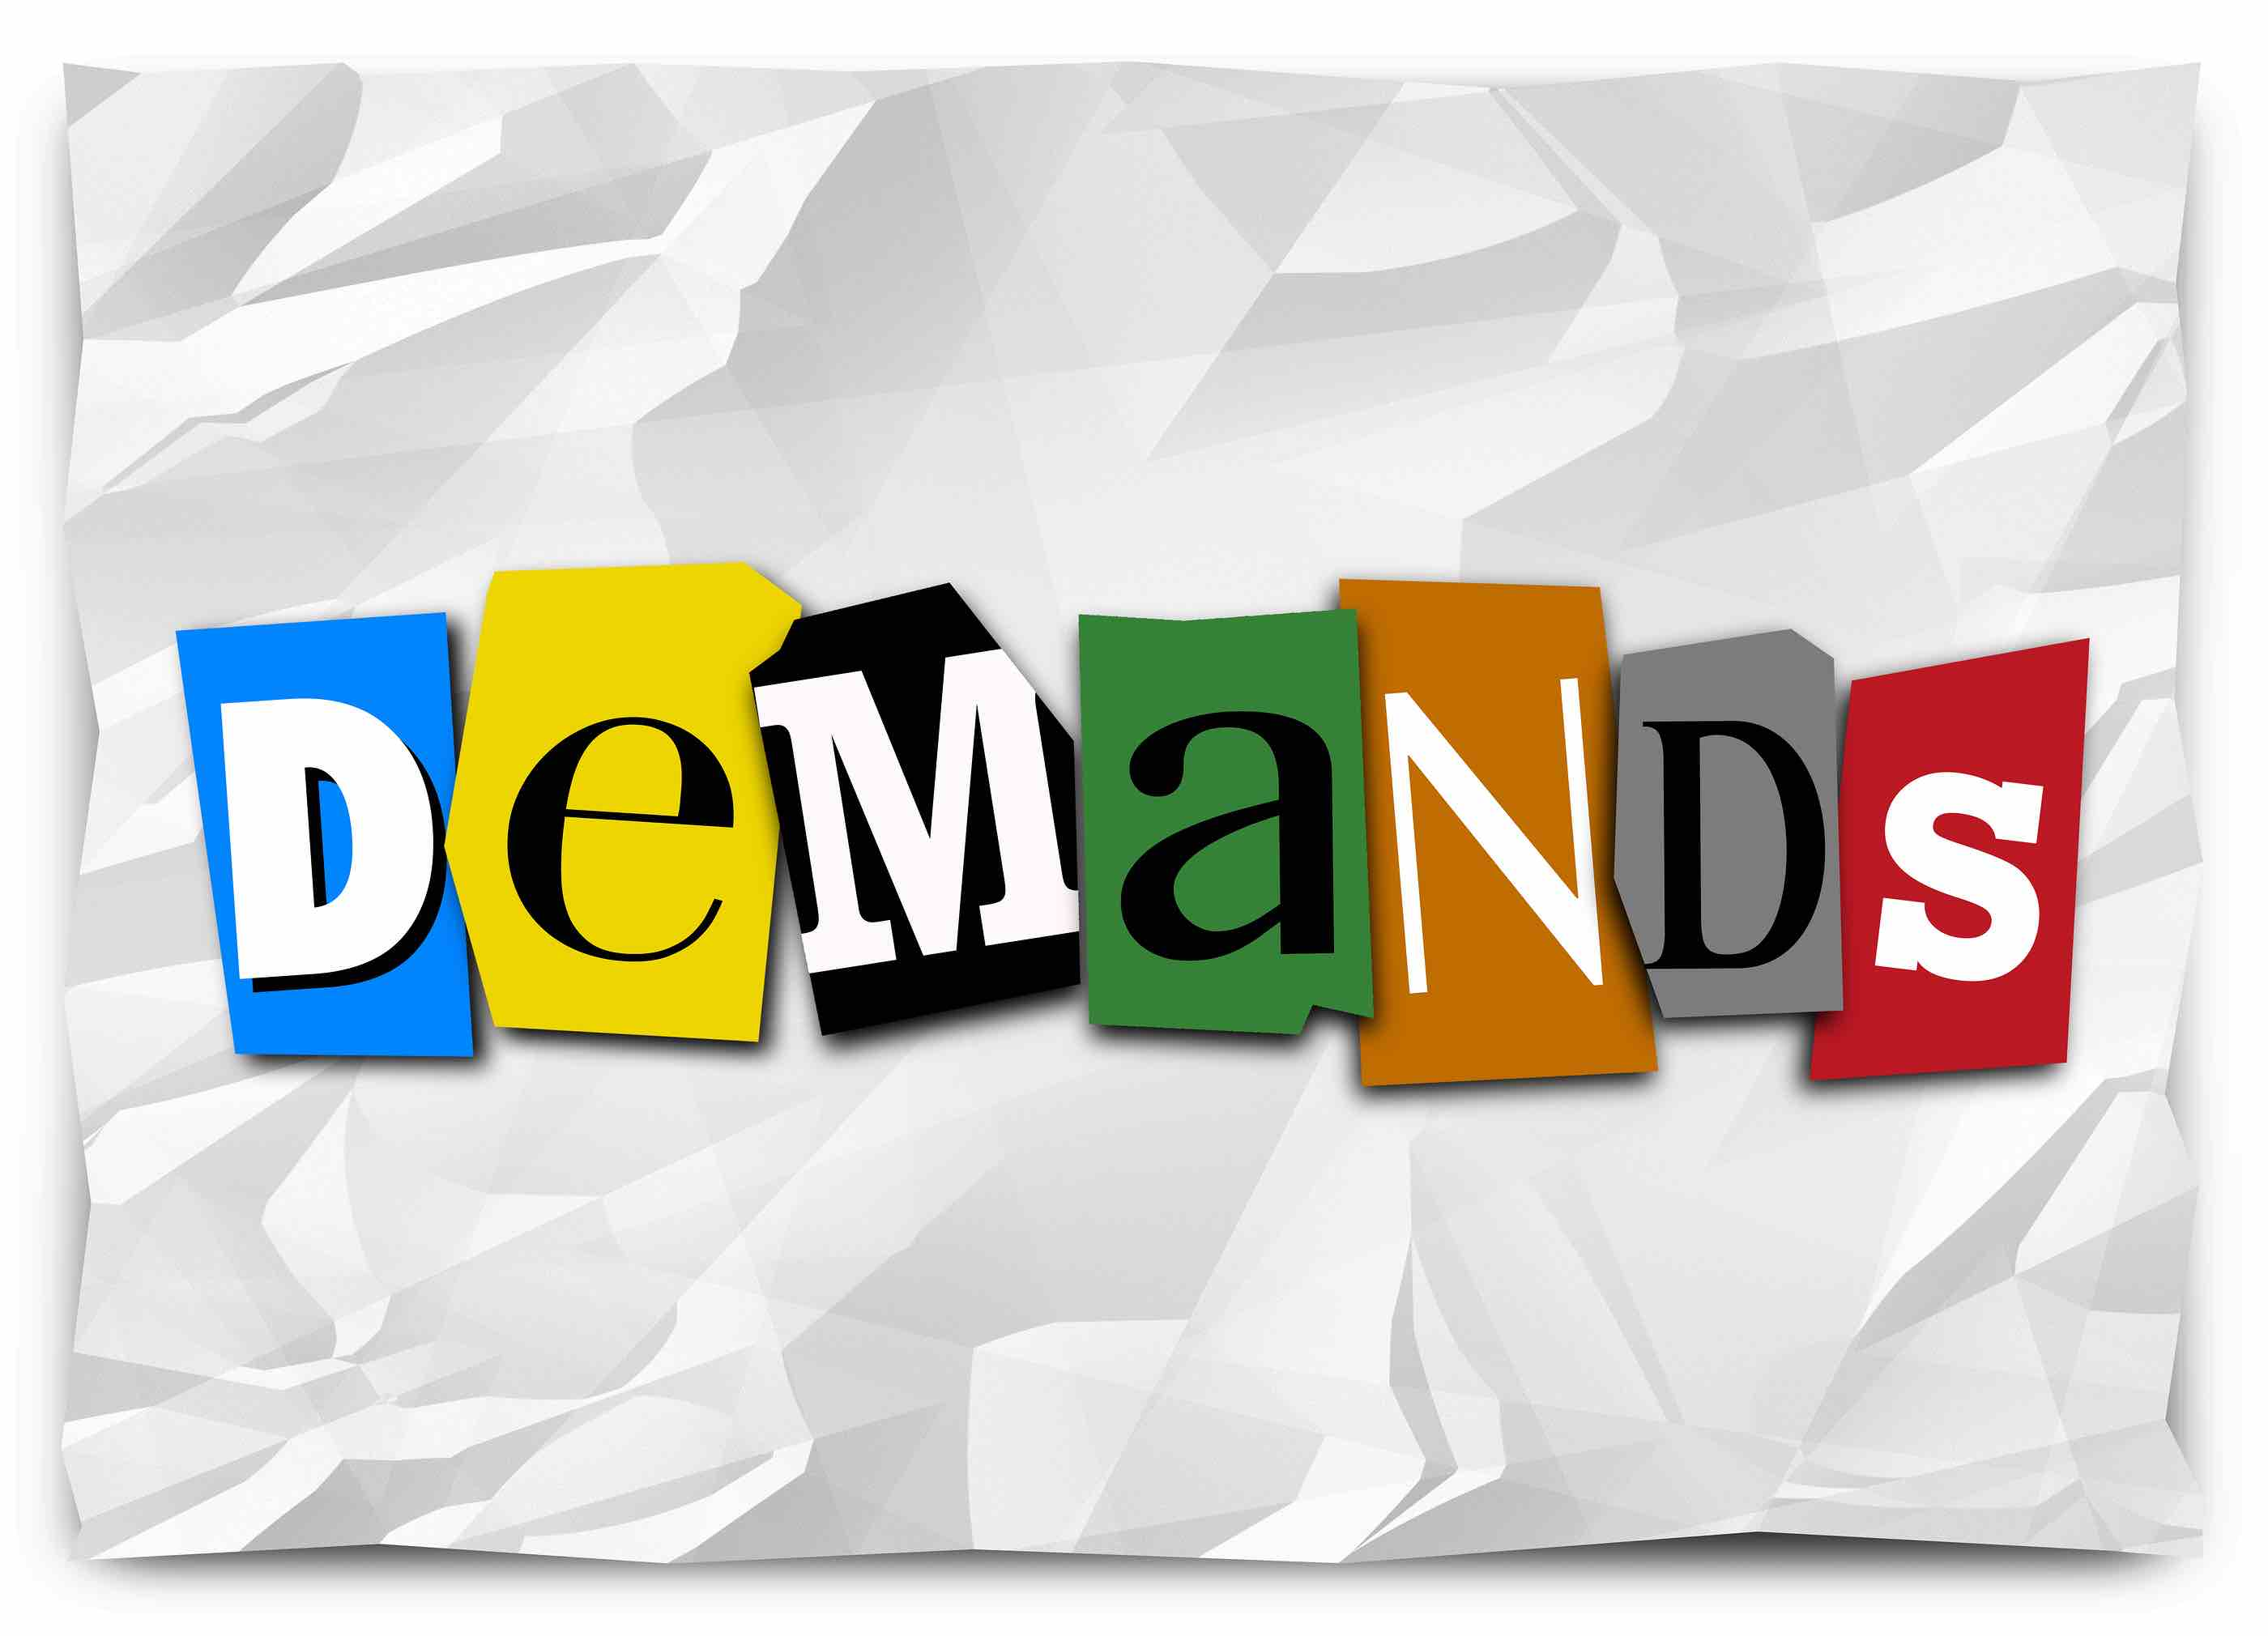 bigstock-Demands-word-in-cut-out-letter-81499217.jpg